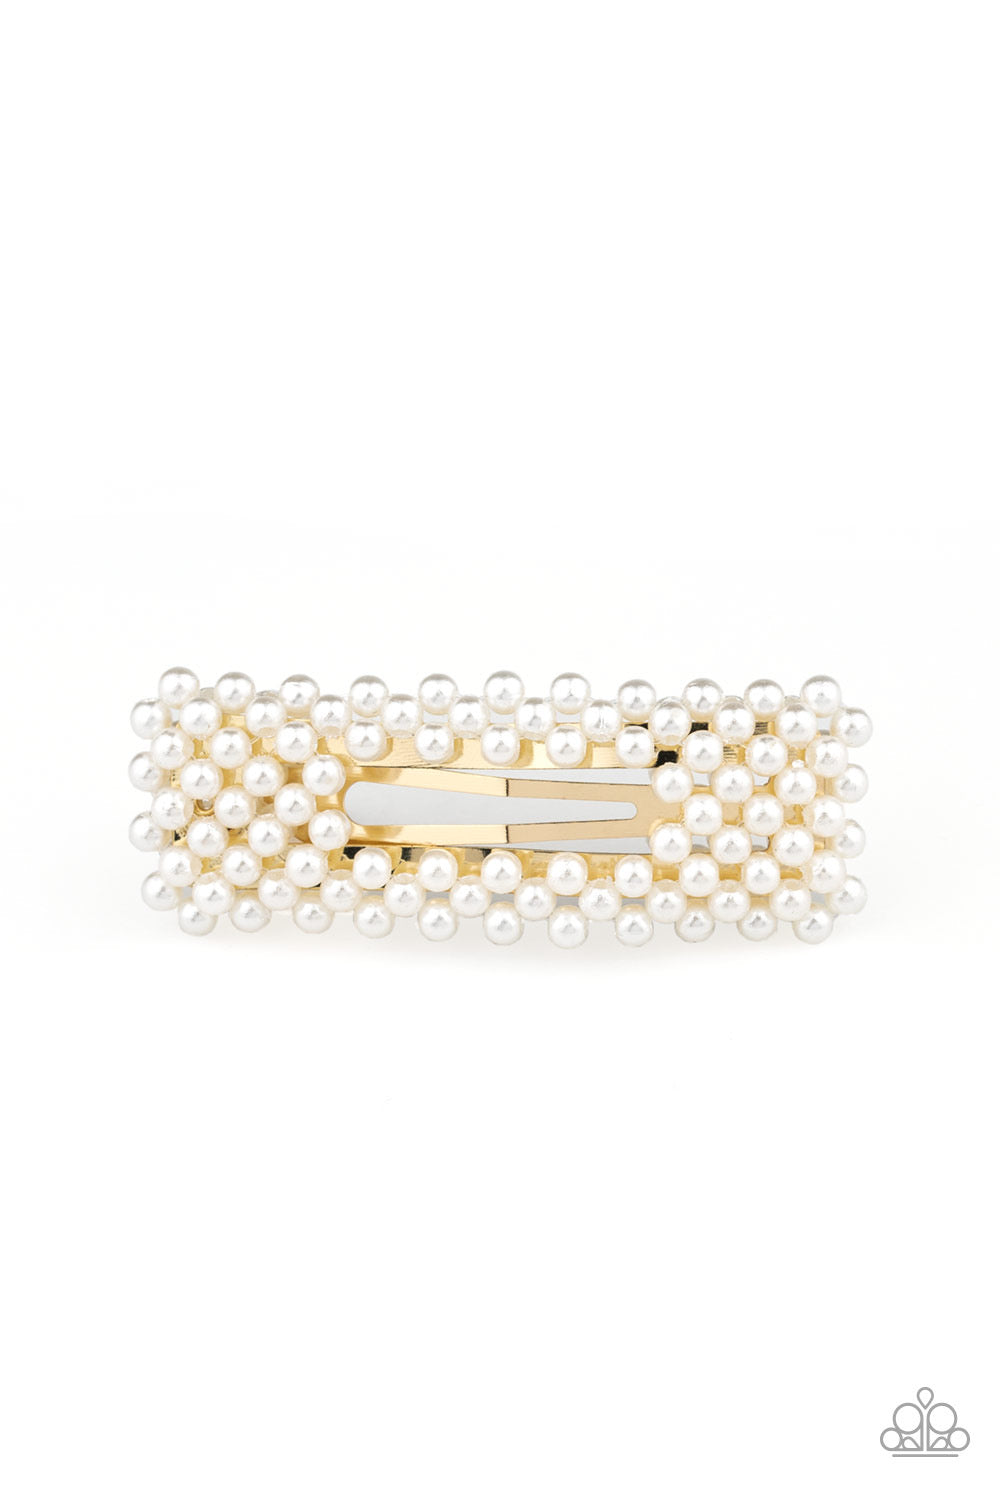 Clutch Your Pearls - Gold Hair Clip